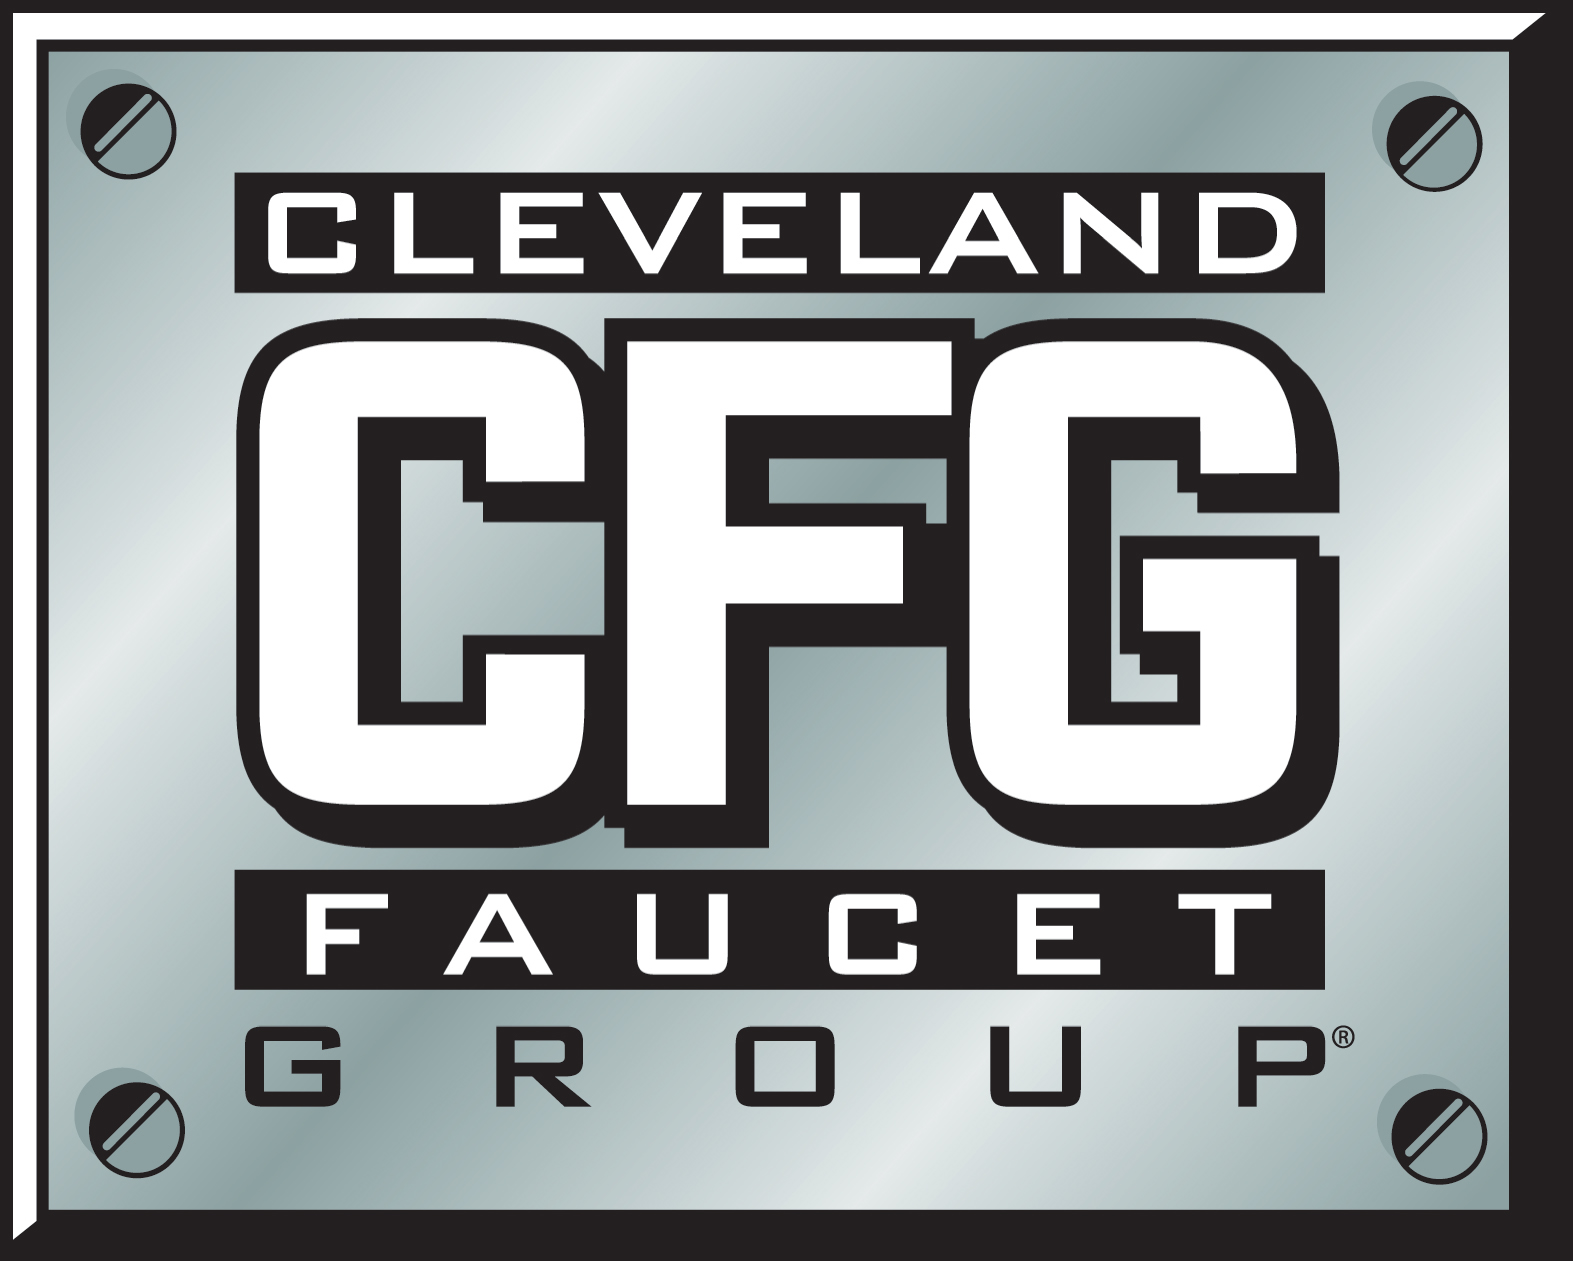 CFG - A Moen Incorporated company.